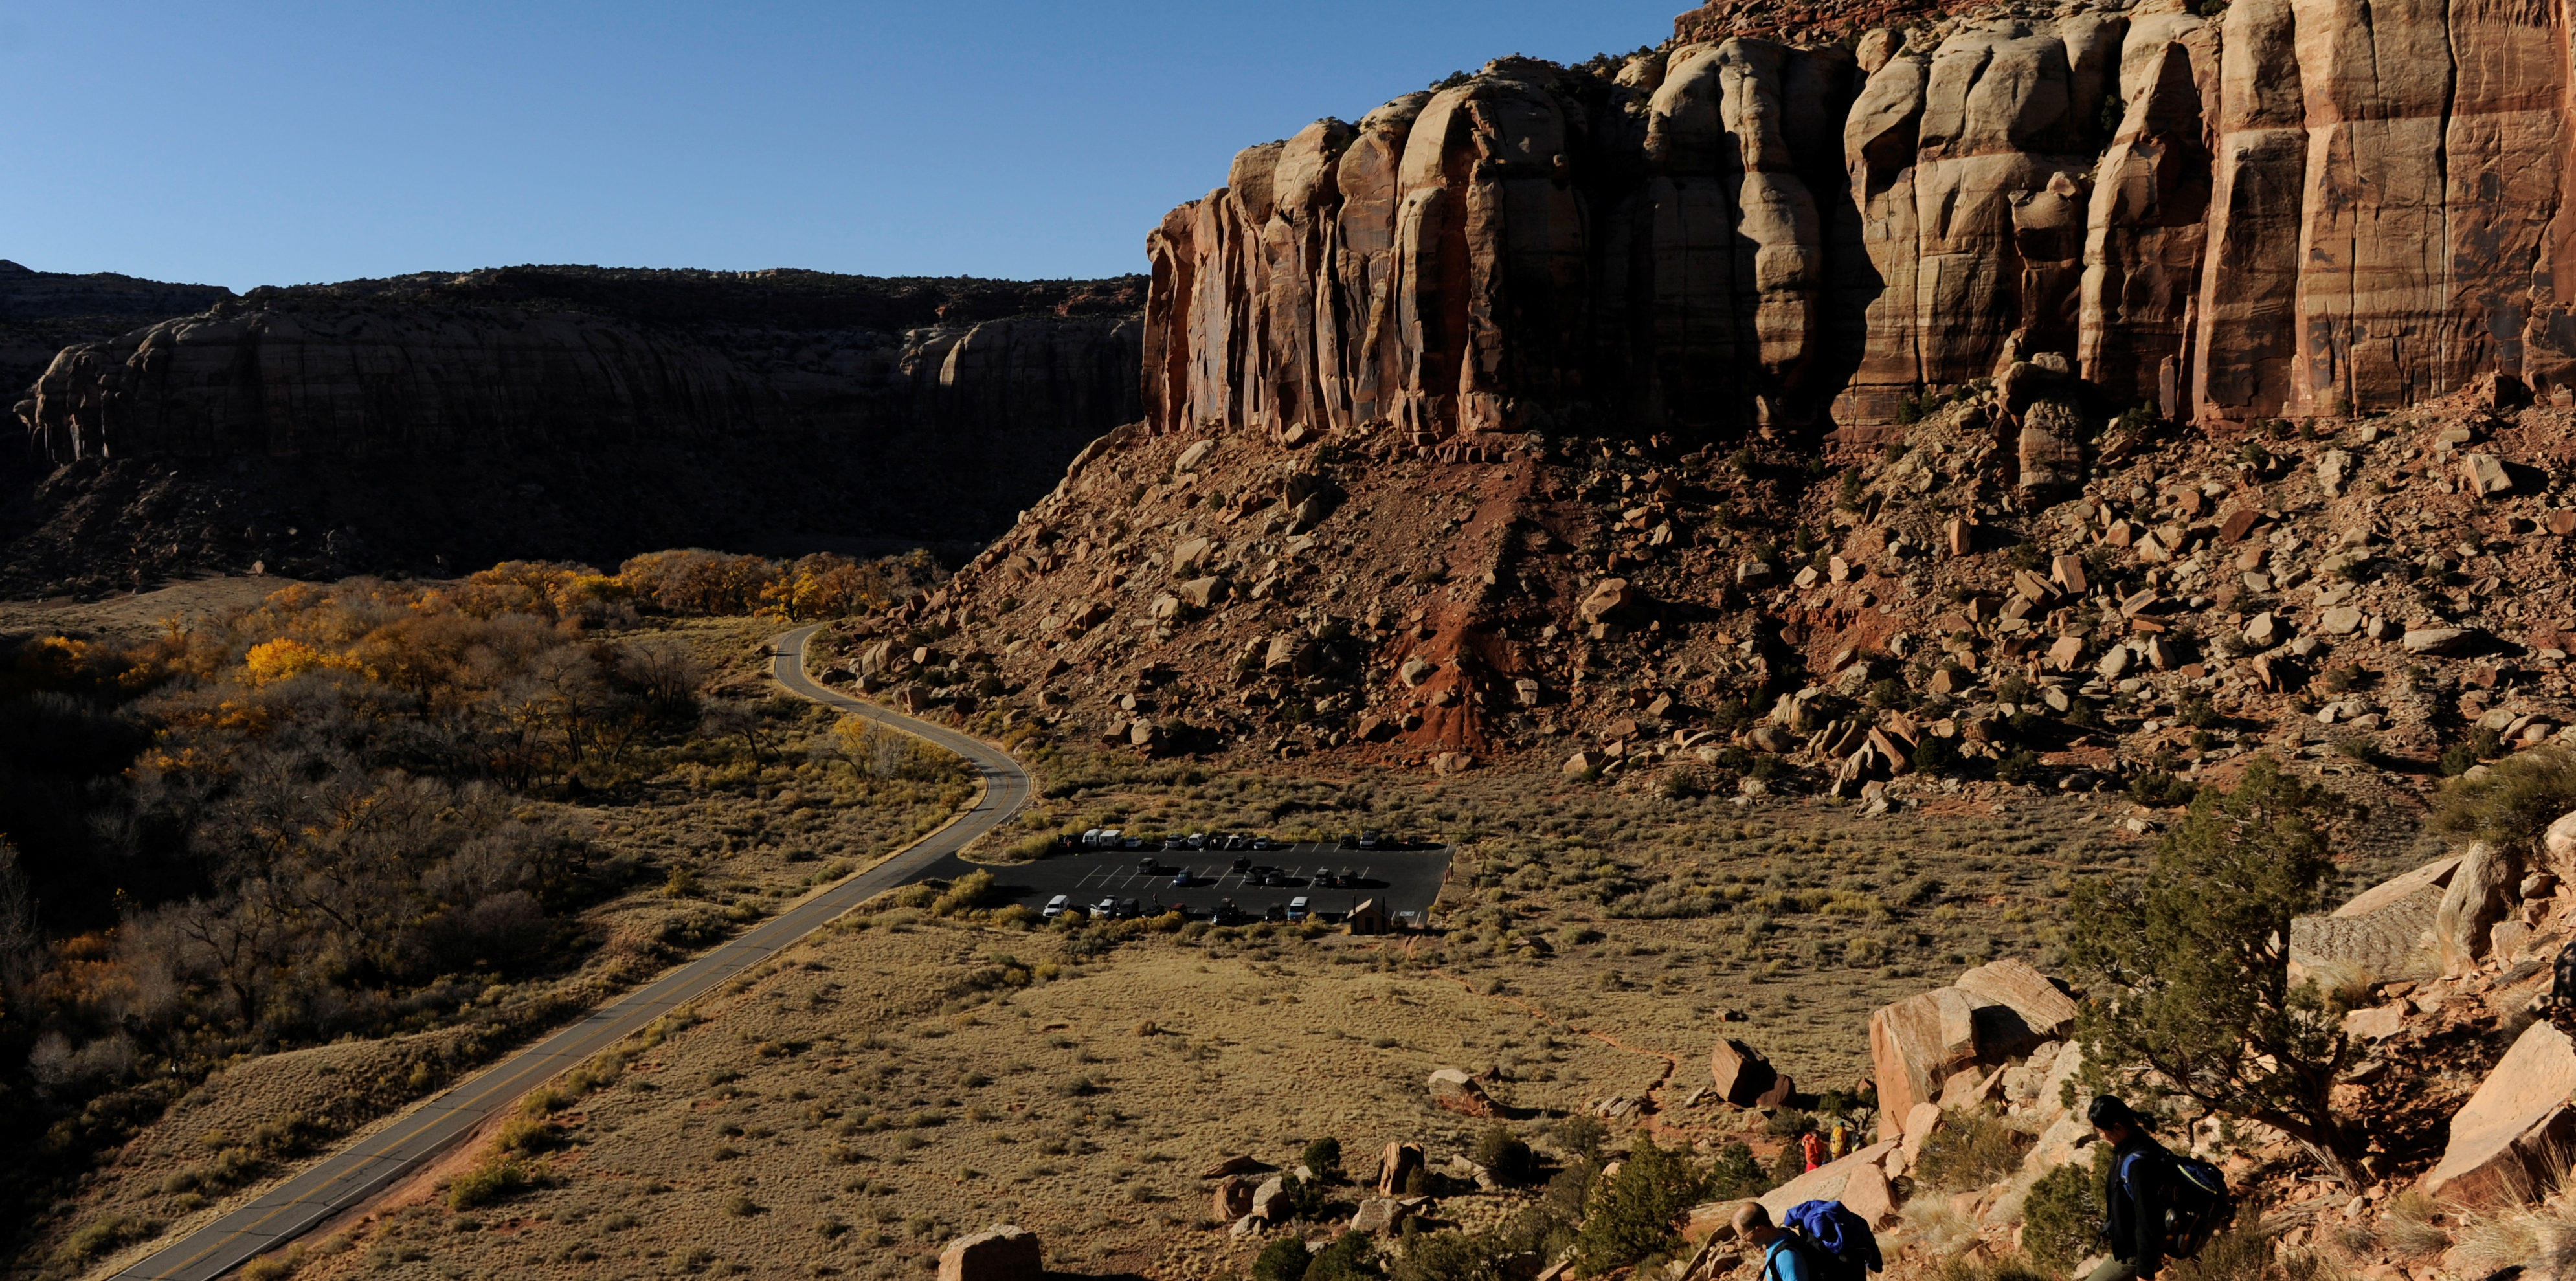 Rock formations at the Indian Creek area in Bears Ears National Monument, New Mexico, U.S., October 29, 2017. REUTERS/Andrew Cullen